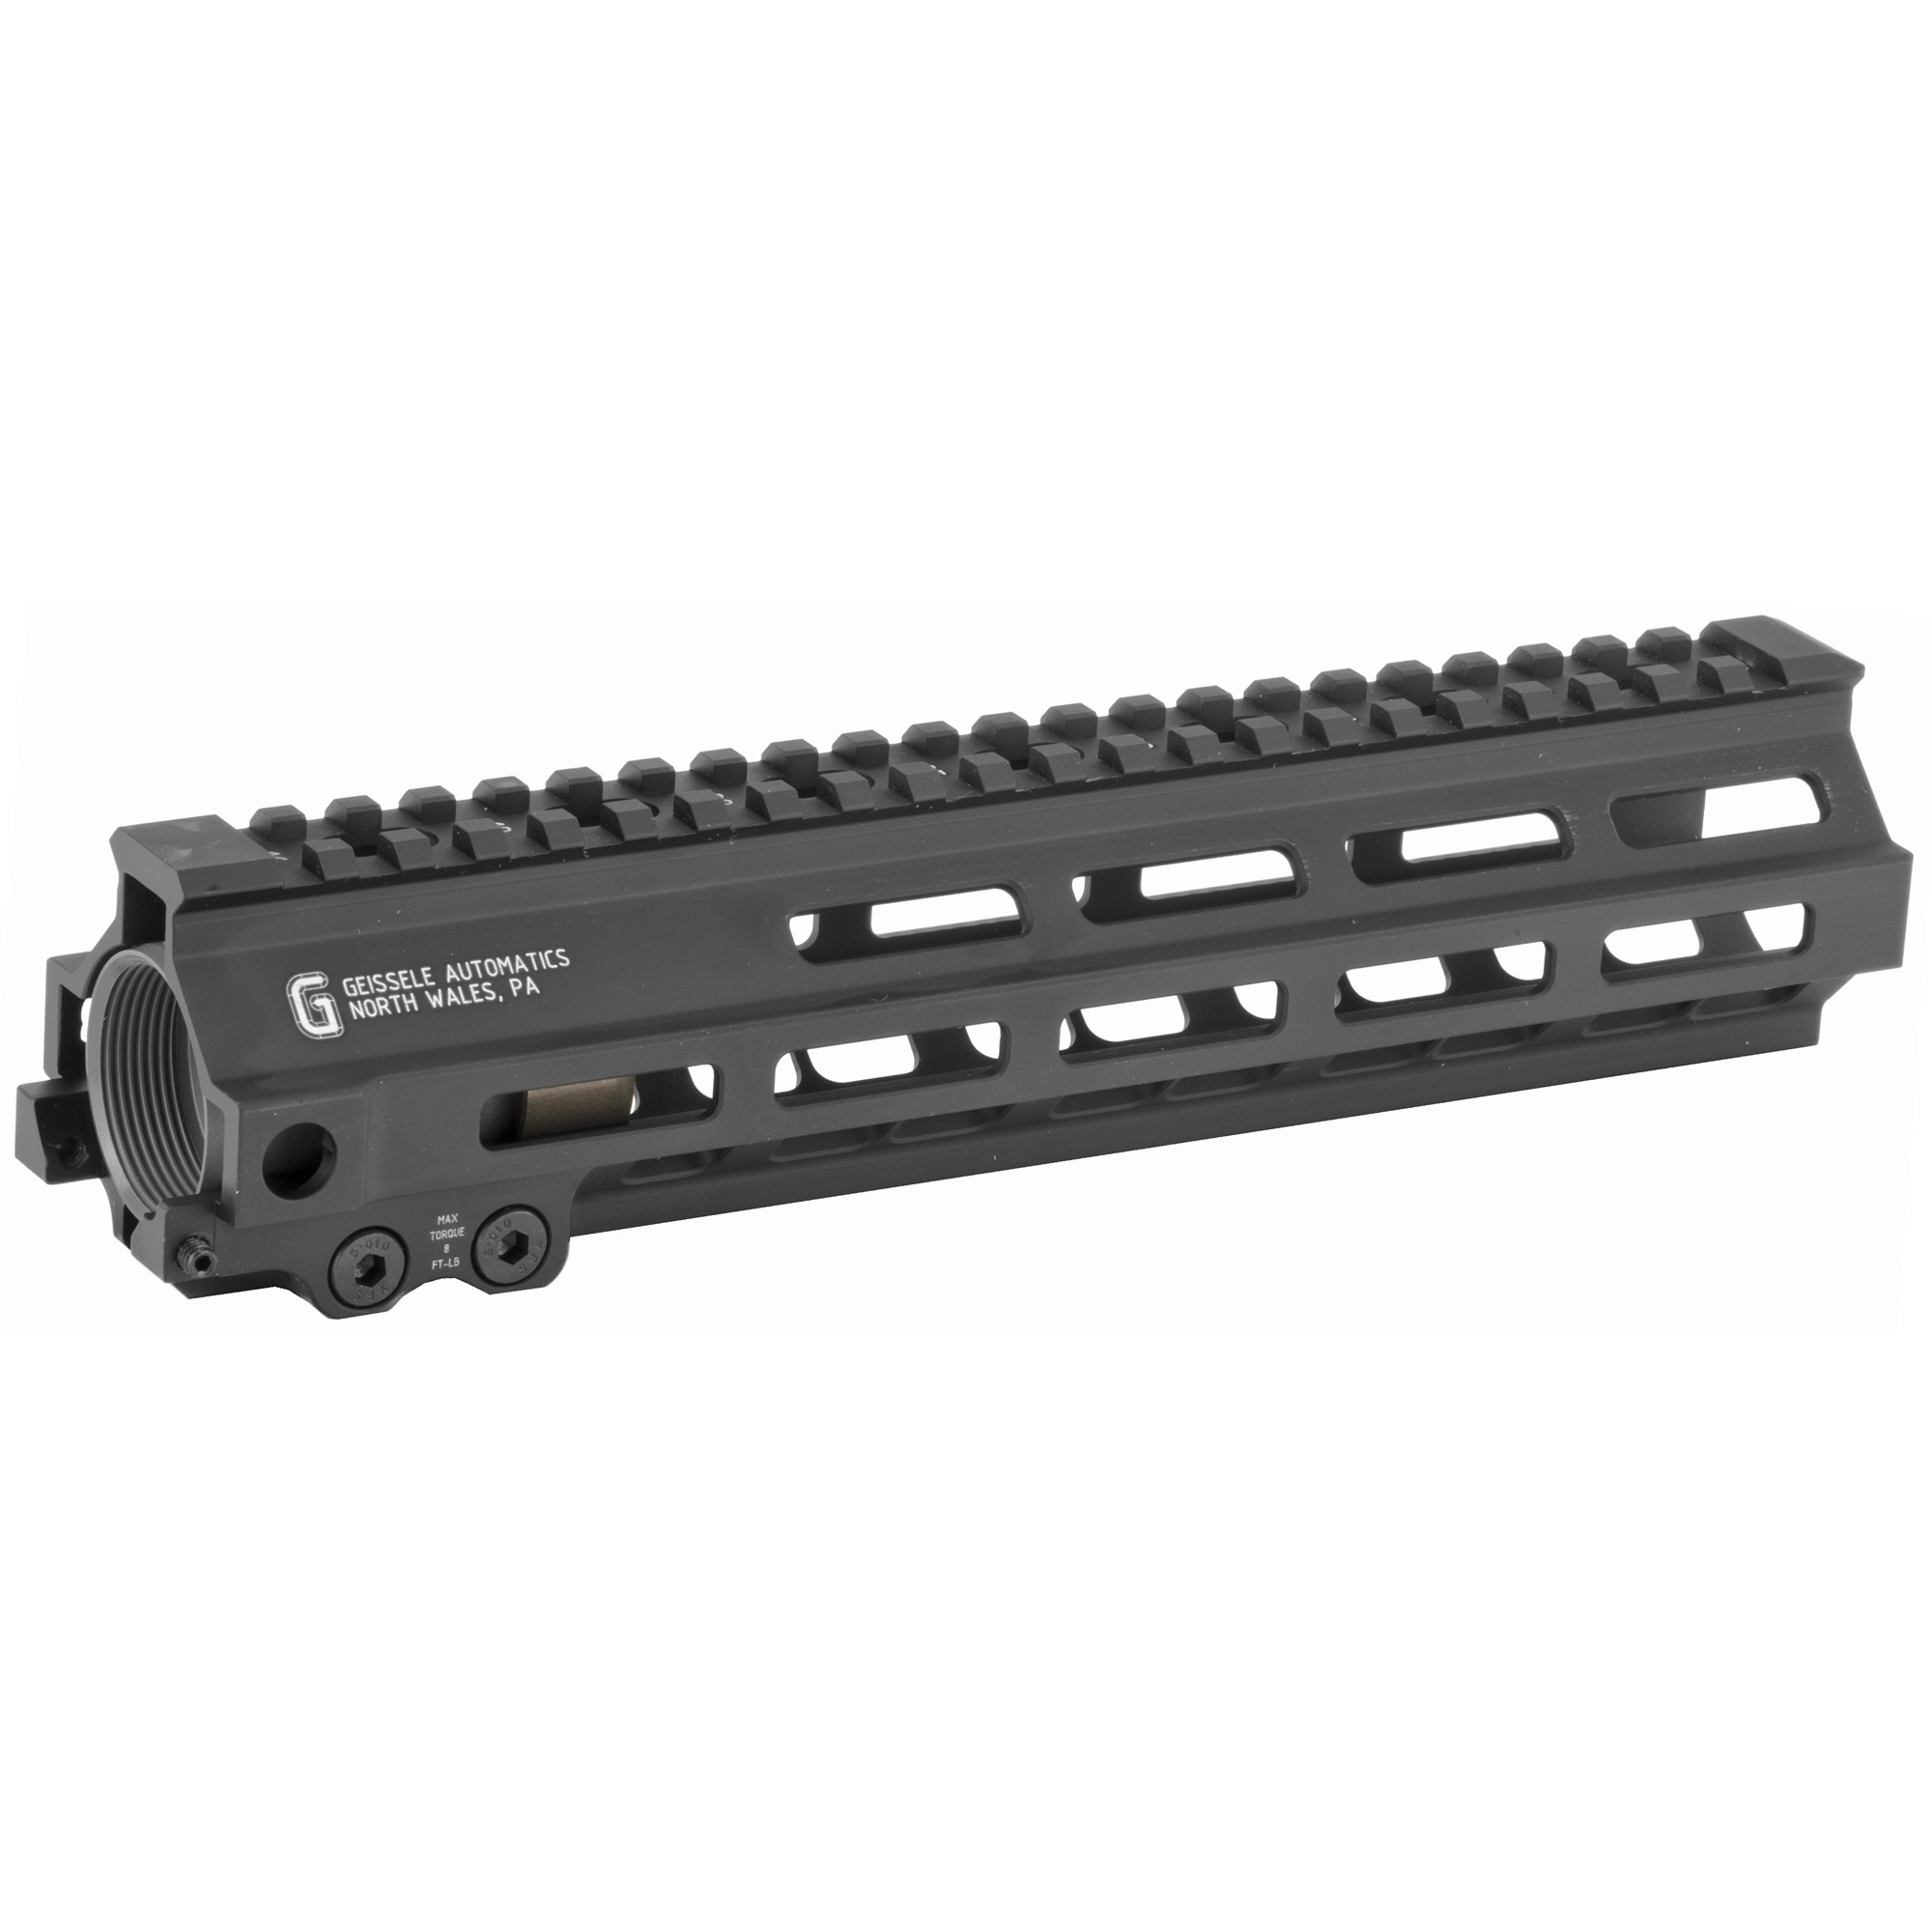 """The Super Modular 9.5"""" Rail (SMR) MK8 M-LOK(TM) is Geissele's ultra-modular model. The SMR MK8 is one of the first rails available to utilize the Magpul M-LOK technology. These rails are designed to give the user full modularity while maintaining a strong and rigid platform. Maximum venting at the lower 45 degree quadrants create maximum heat dissipation and also dramatically reduces the rail's overall weight. Utilizing Magpul's M-LOK technology at the 3"""" 6"""" and 9 o'clock positions"""" as well as the upper 45 degree quadrants. The SMR MK8 is both versatile and modular"""" allowing the user to tailor their platform to his or her unique needs. The SMR MK8 also features Geissele's proprietary 2.25"""" long barrel nut. This increases the surface contact where the rail interfaces with the receiver and creates a platform that can be trusted to be straight and true the entire length of the free float rail. This increases accuracy and zero repeatability during disassembly and reassembly when performing maintenance."""